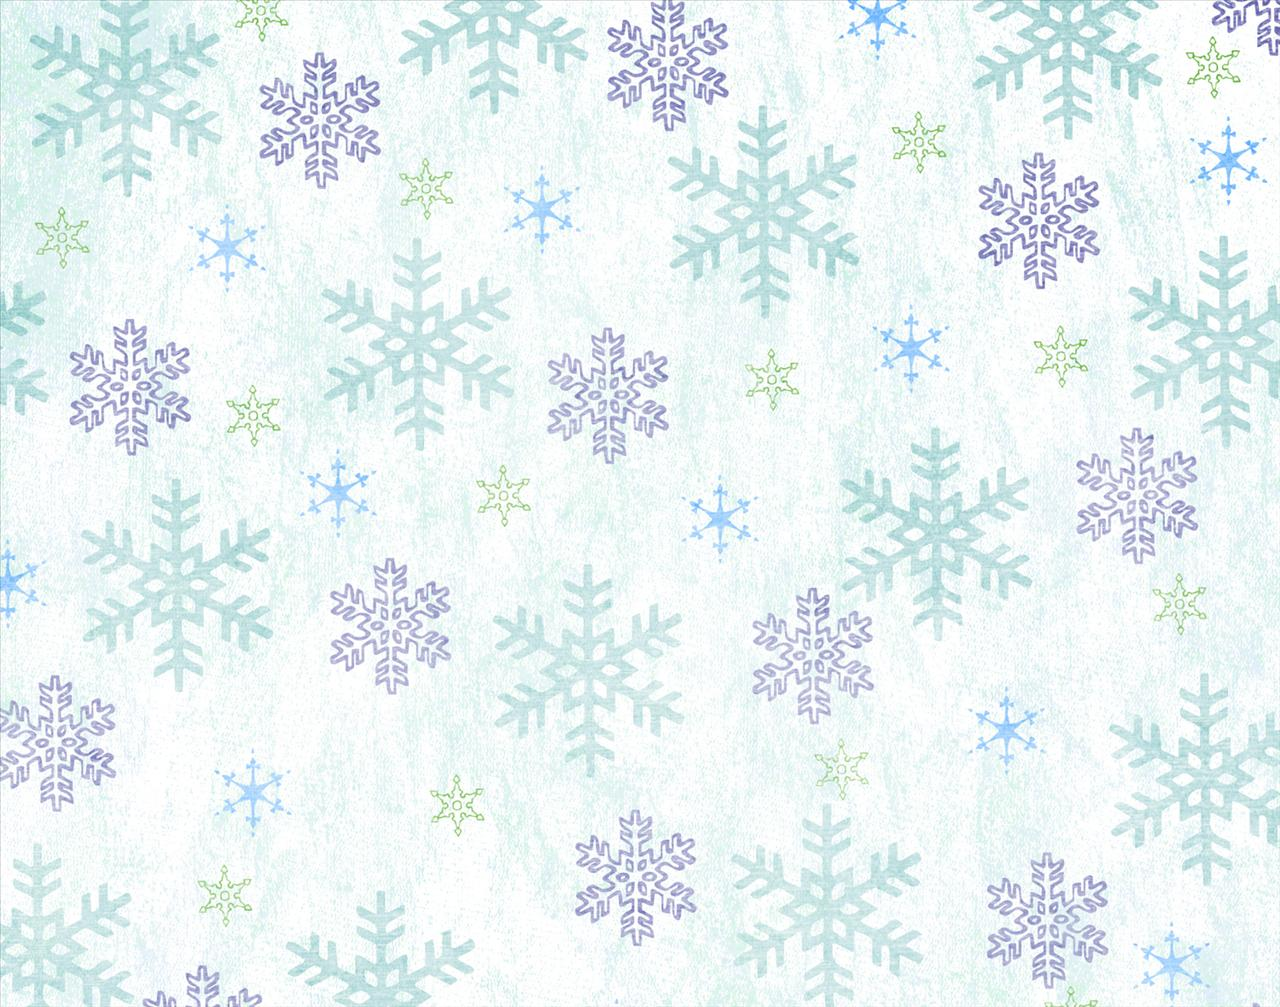 ... 15> Images For - Snowflake Background... Tumblr Backgrounds Snow